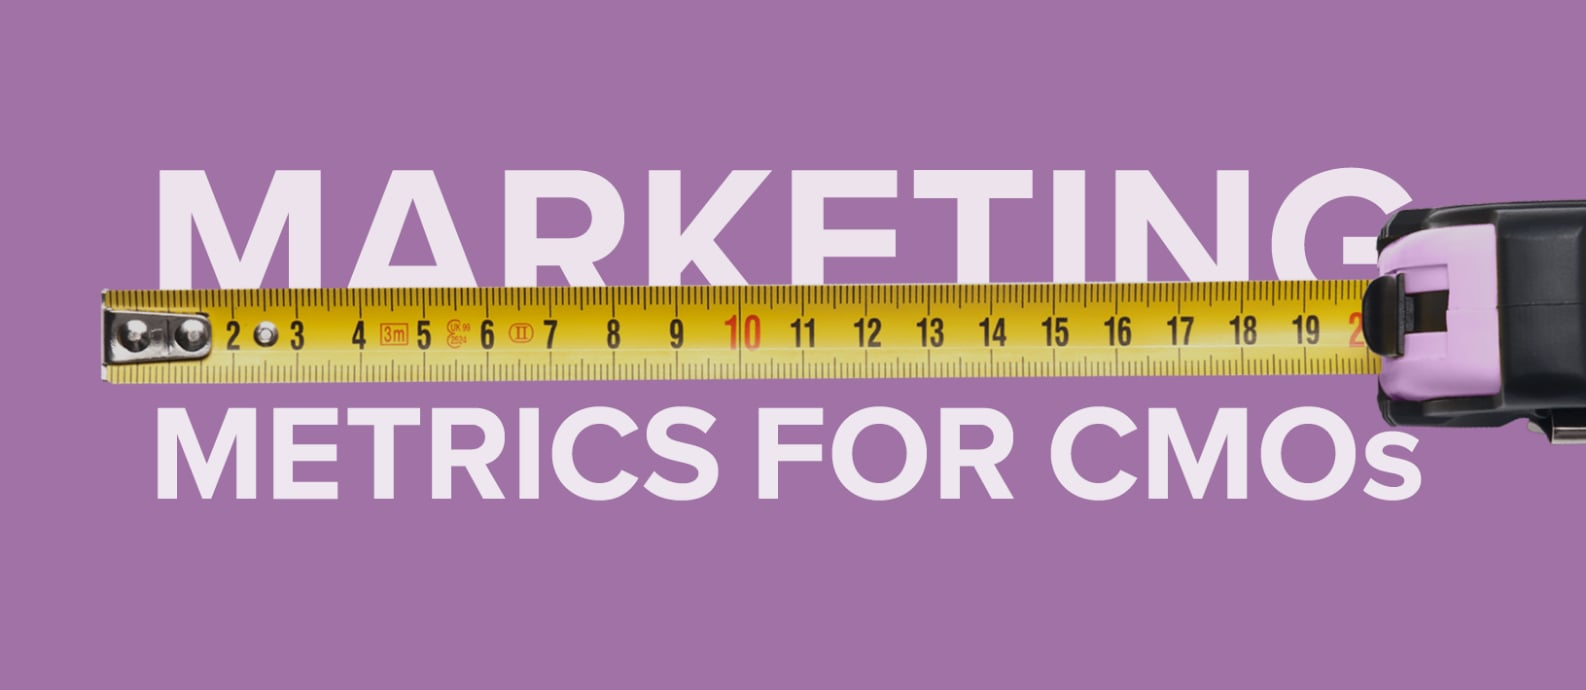 Marketing KPIs and Metrics For CMOs